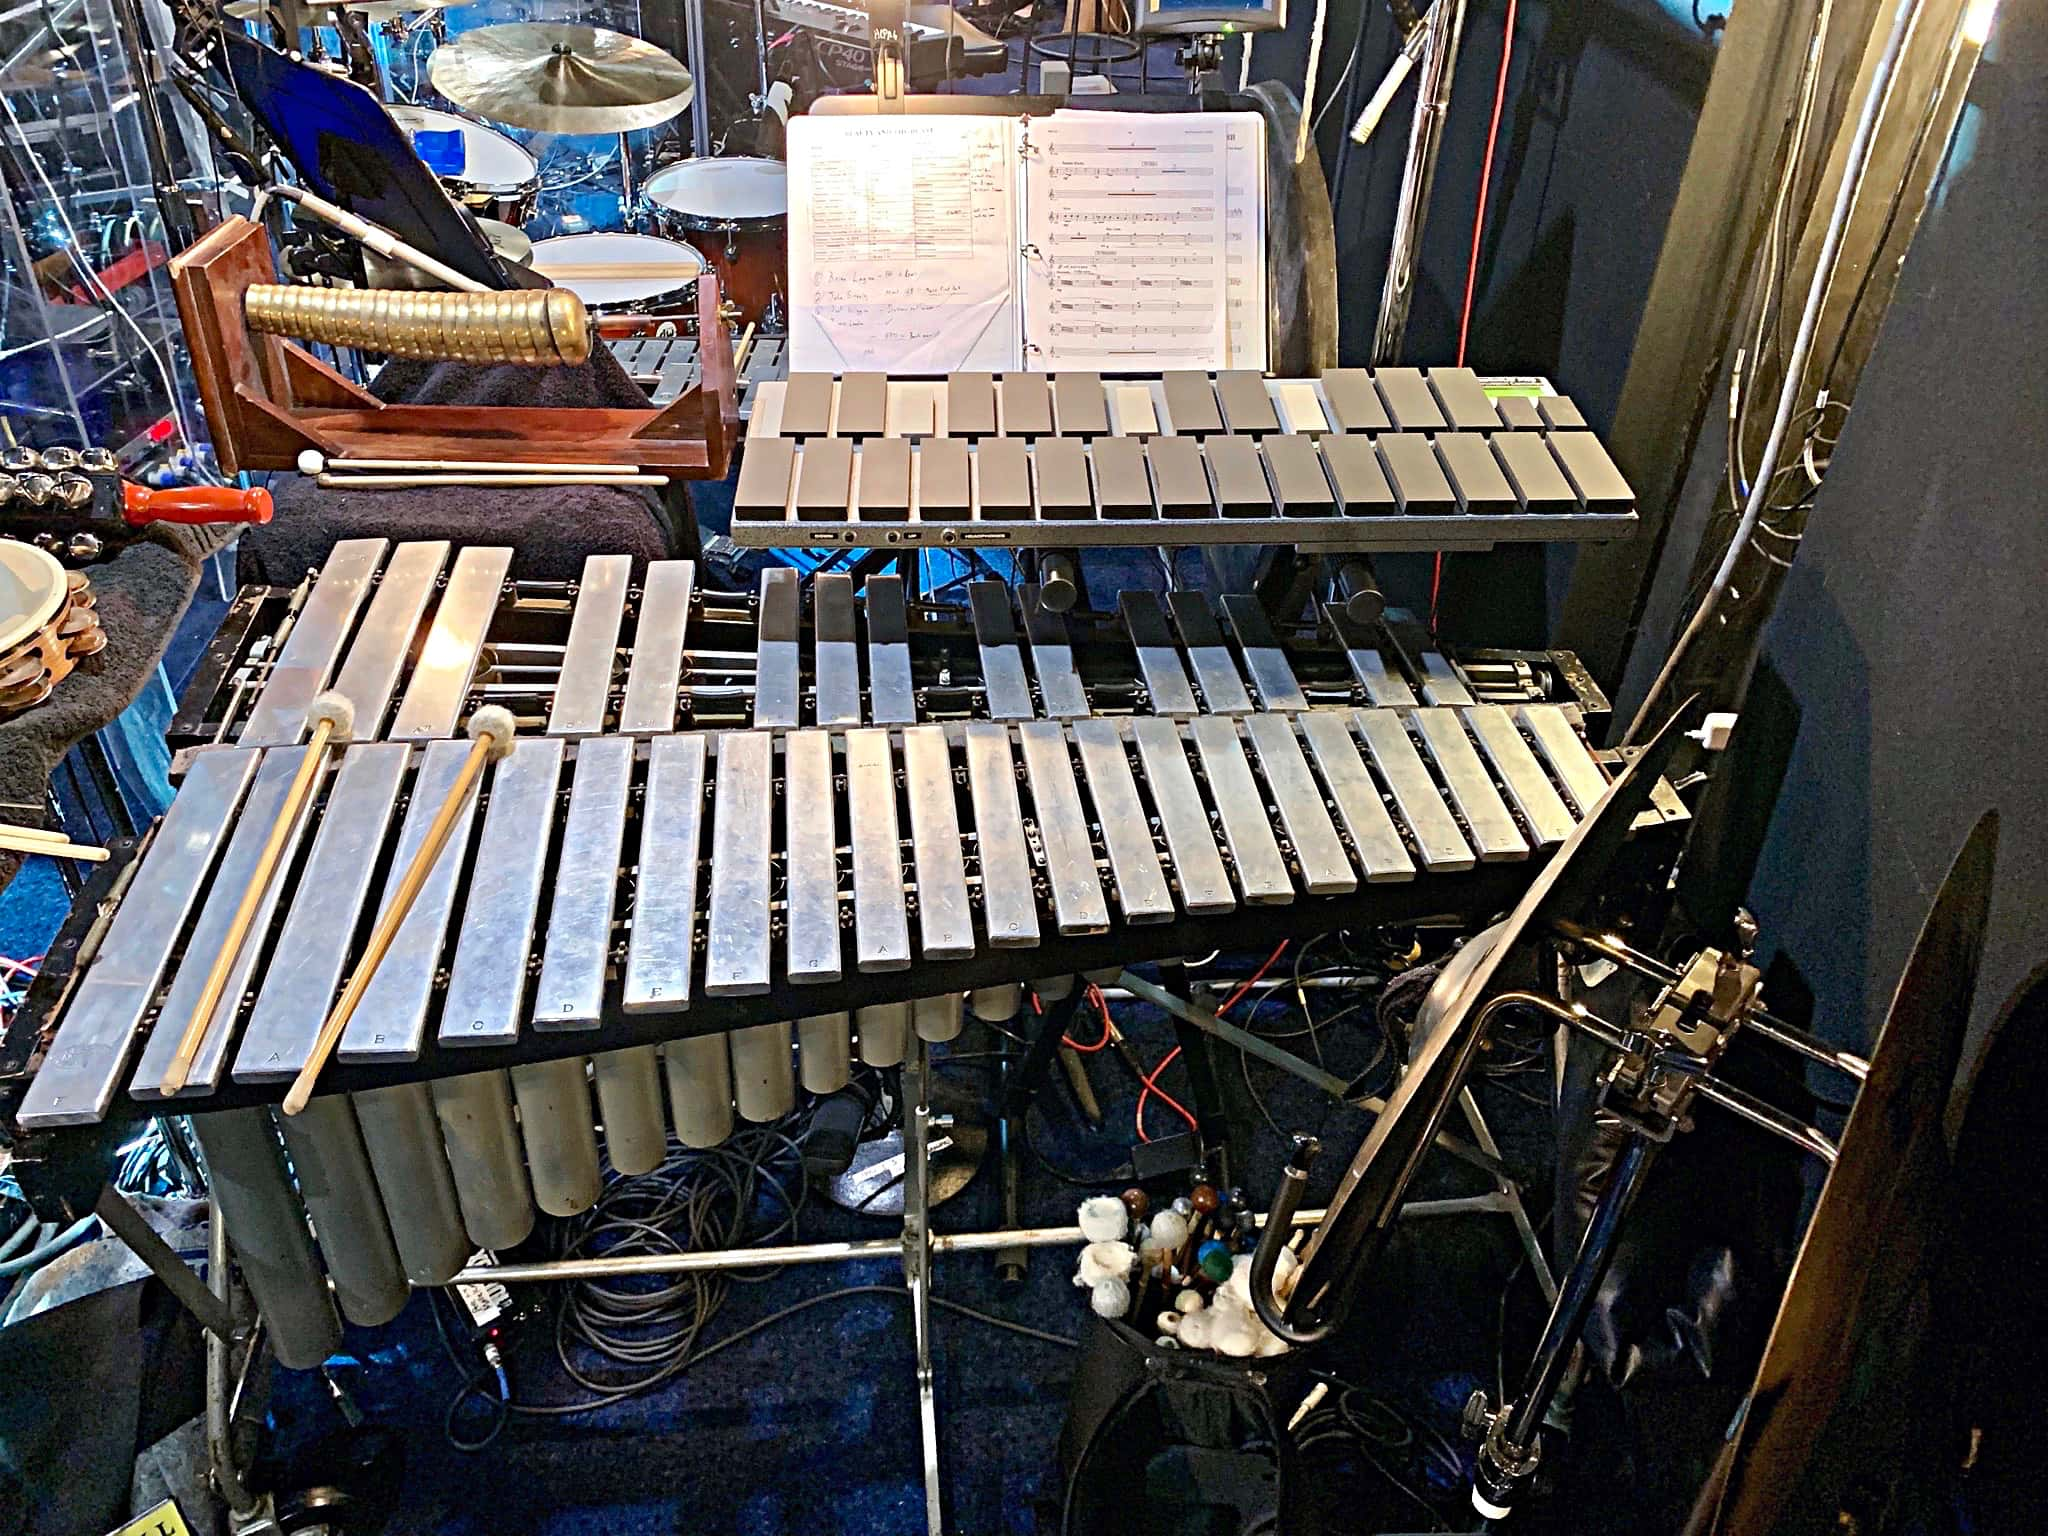 Luke Hubley's percussion setup for Beauty and the Beast at Theater Under The Stars in Houston Texas.